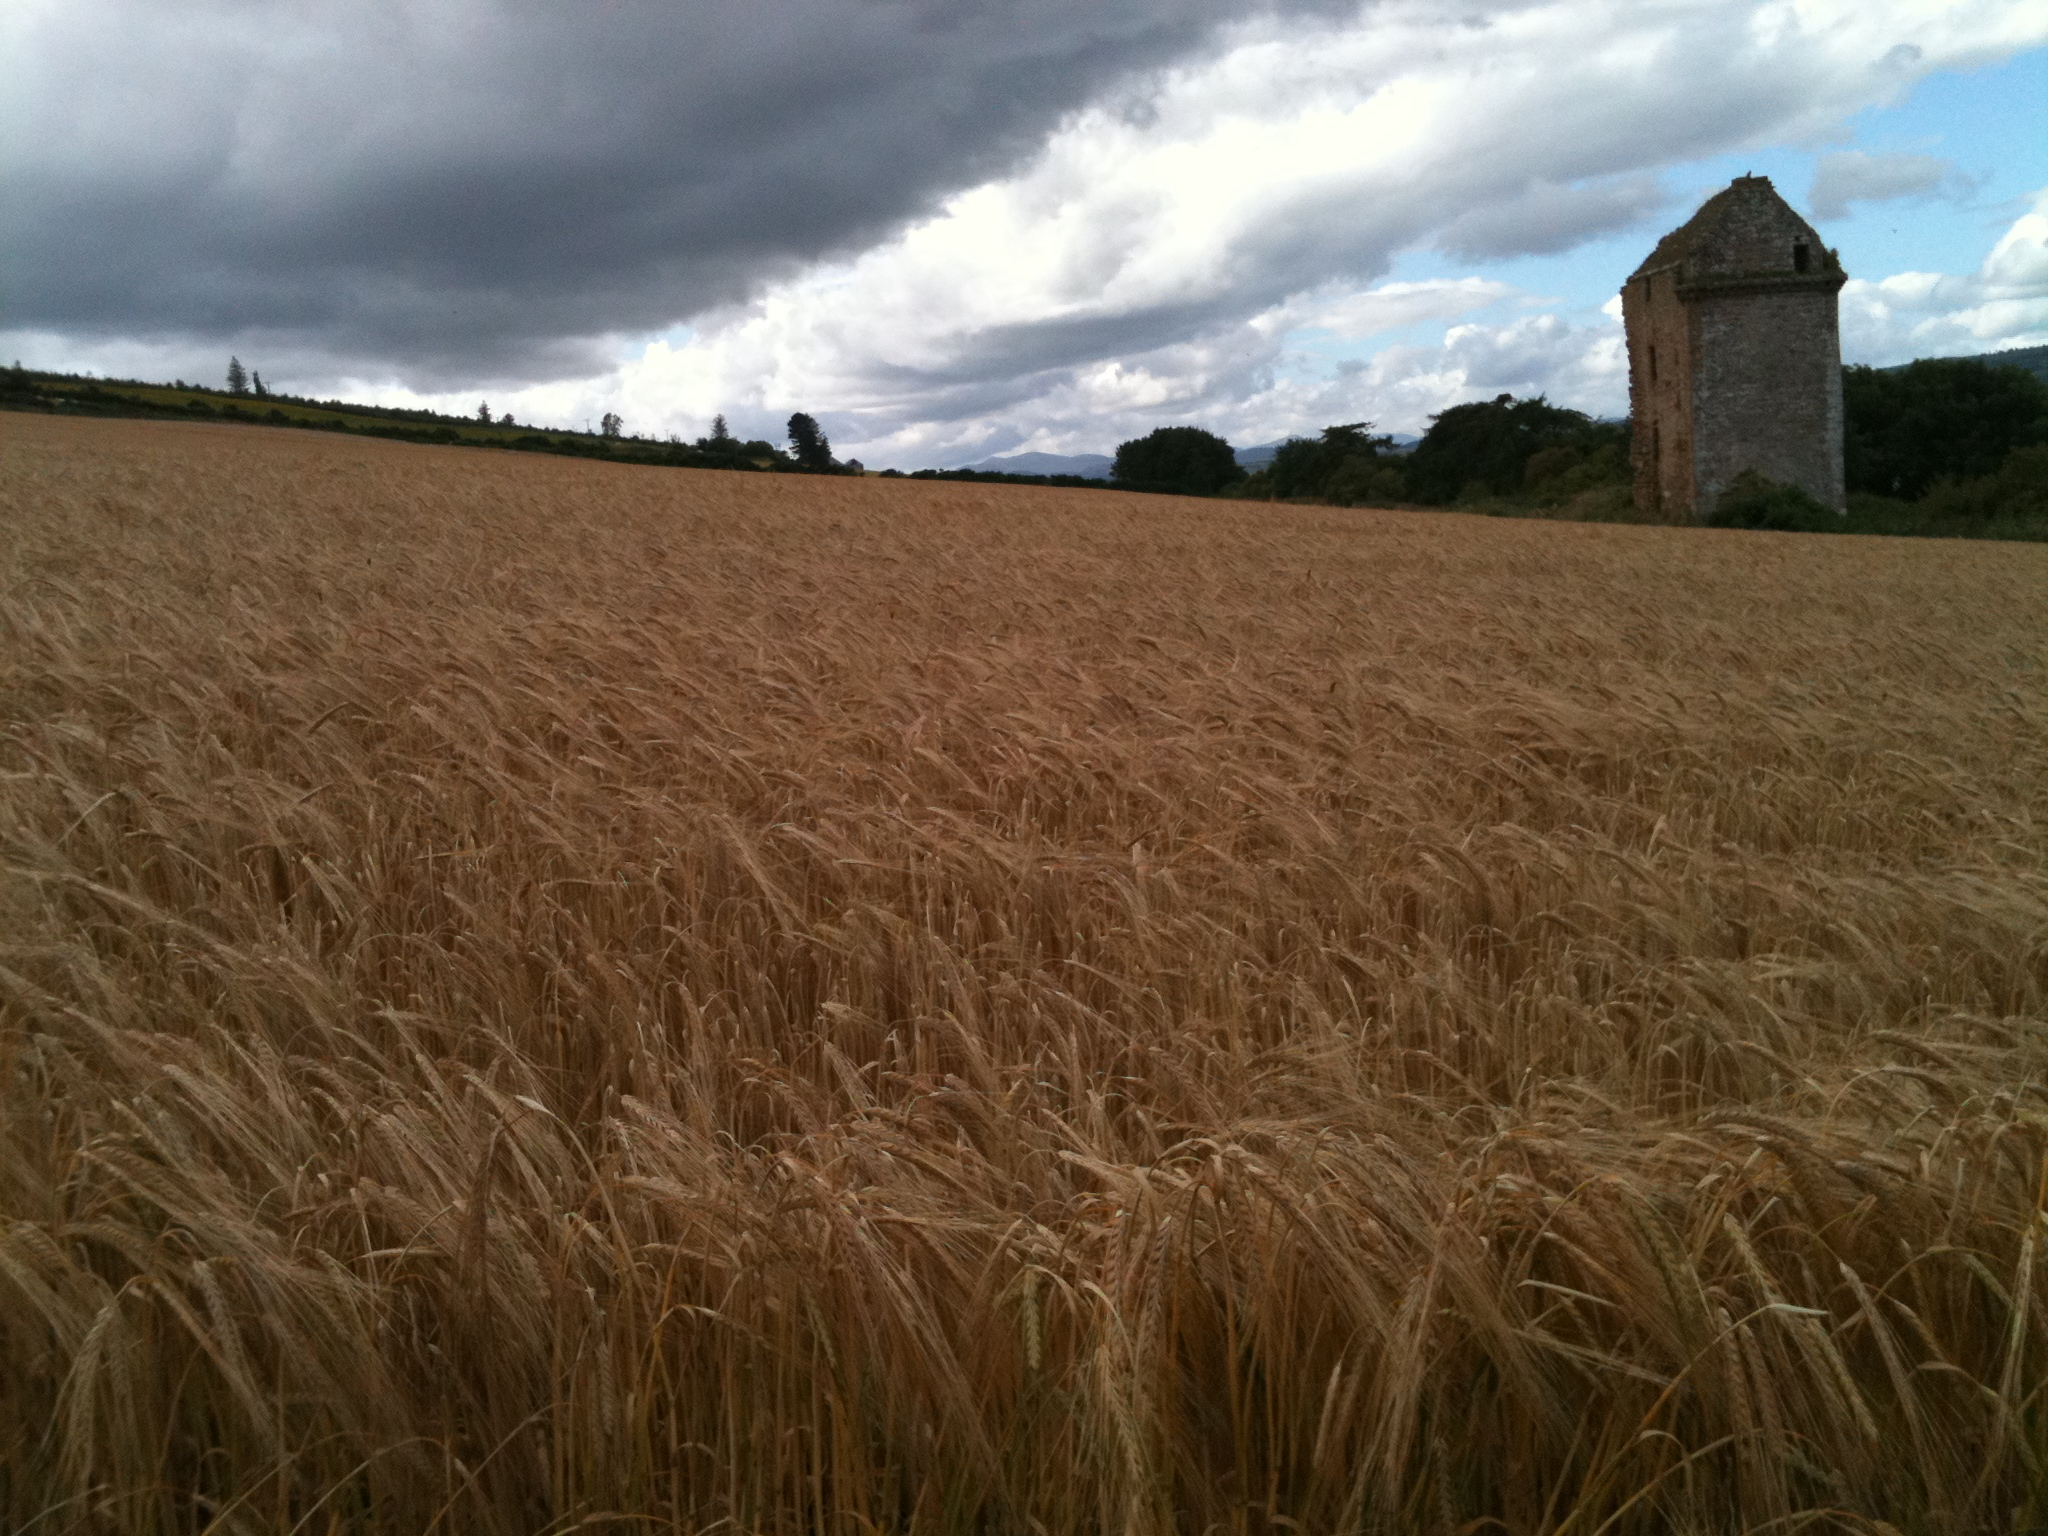 A field of wheat at Castlecraig in Scotland.